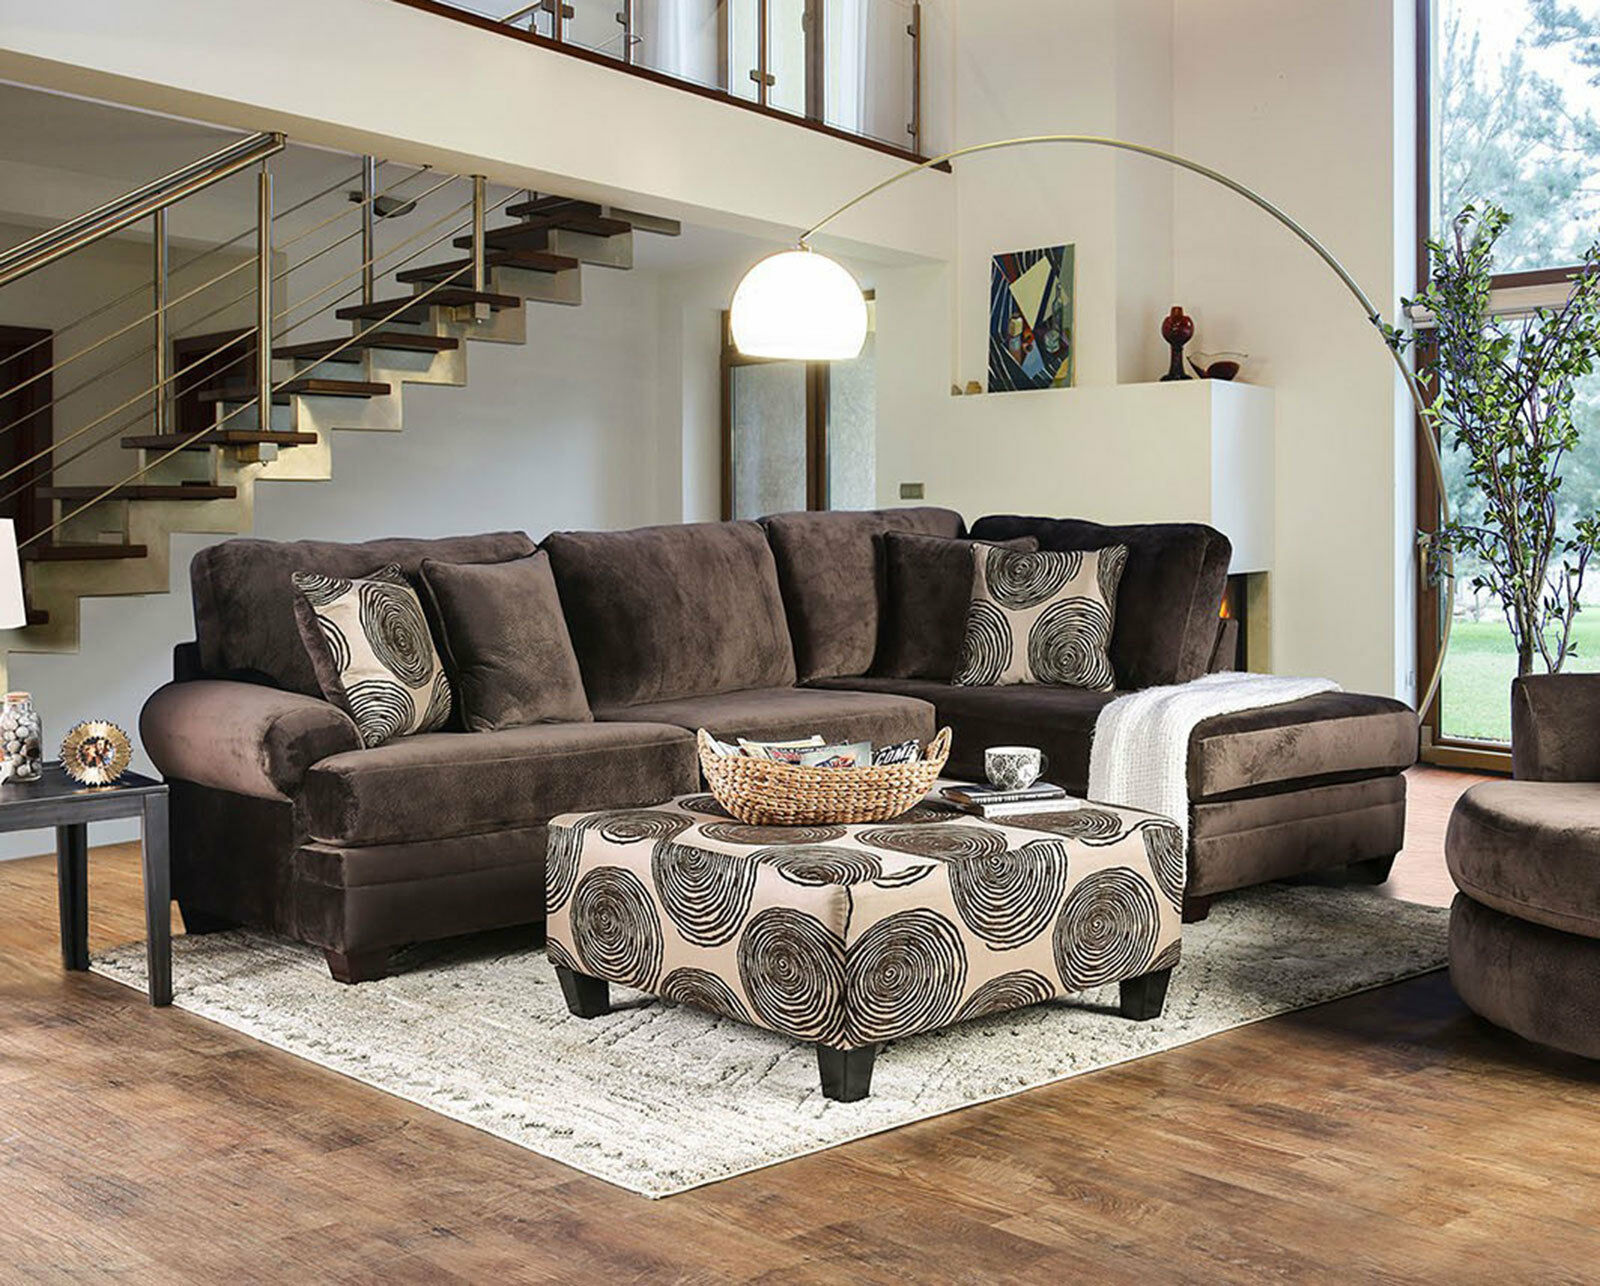 Brown Microfiber Sofa Couch